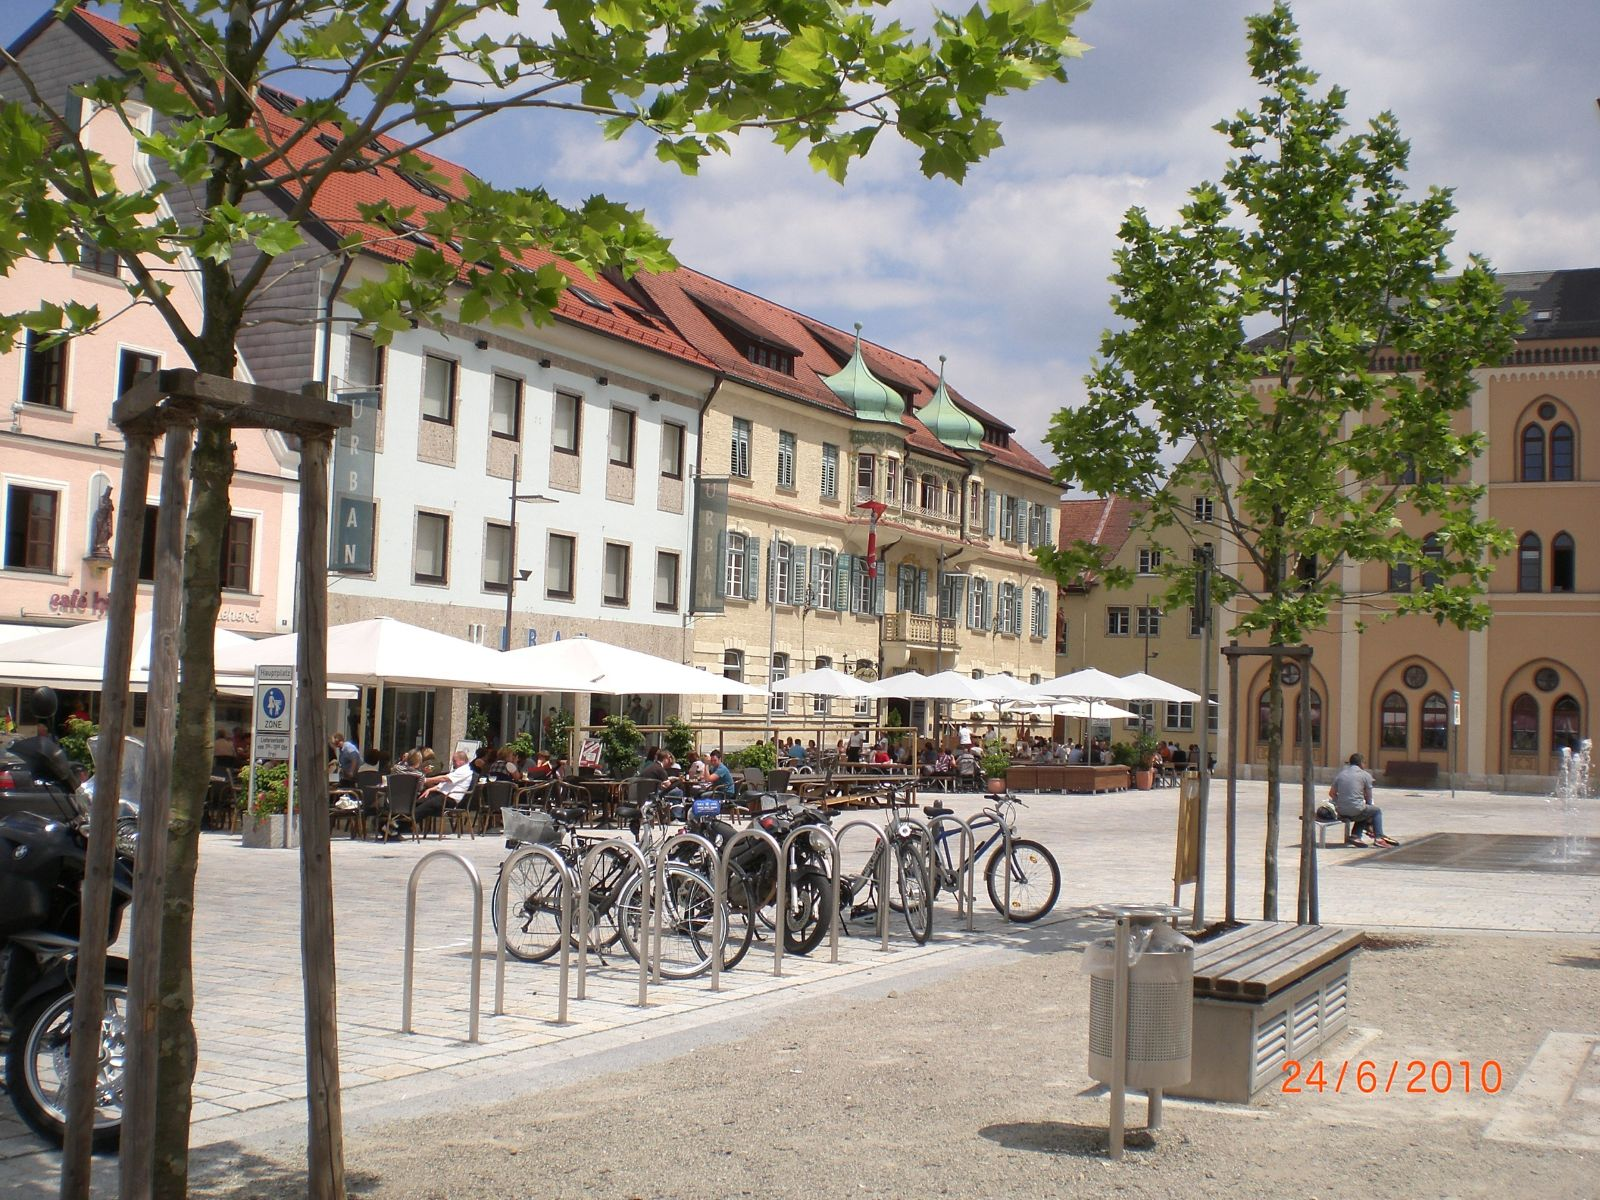 euroform w - urban furniture - bike racks - bike storage - Arco